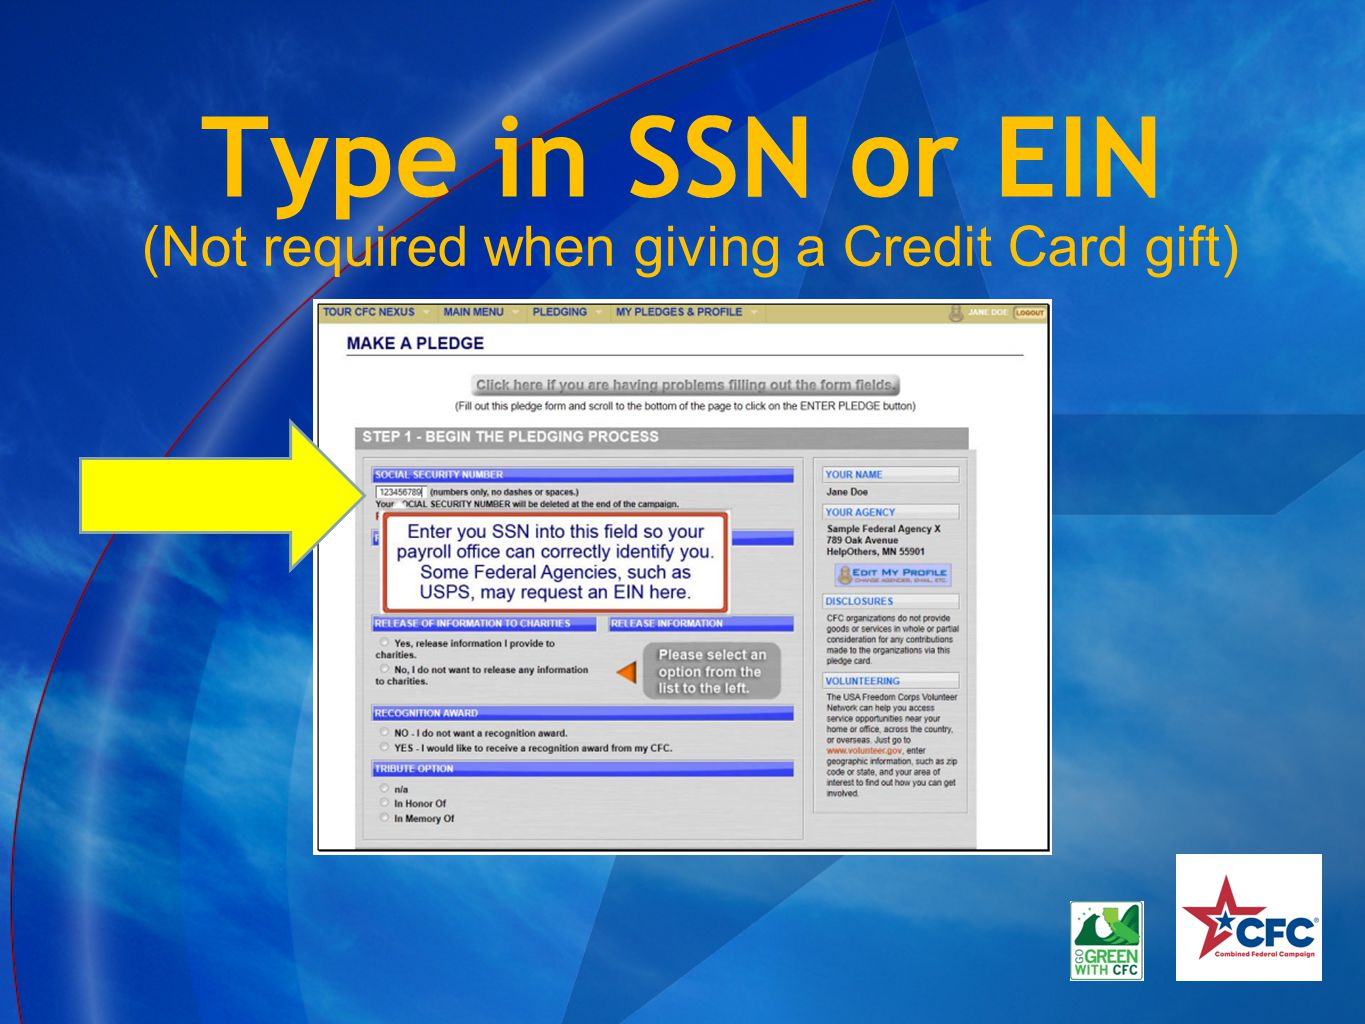 Type in SSN or EIN (Not required when giving a Credit Card gift)